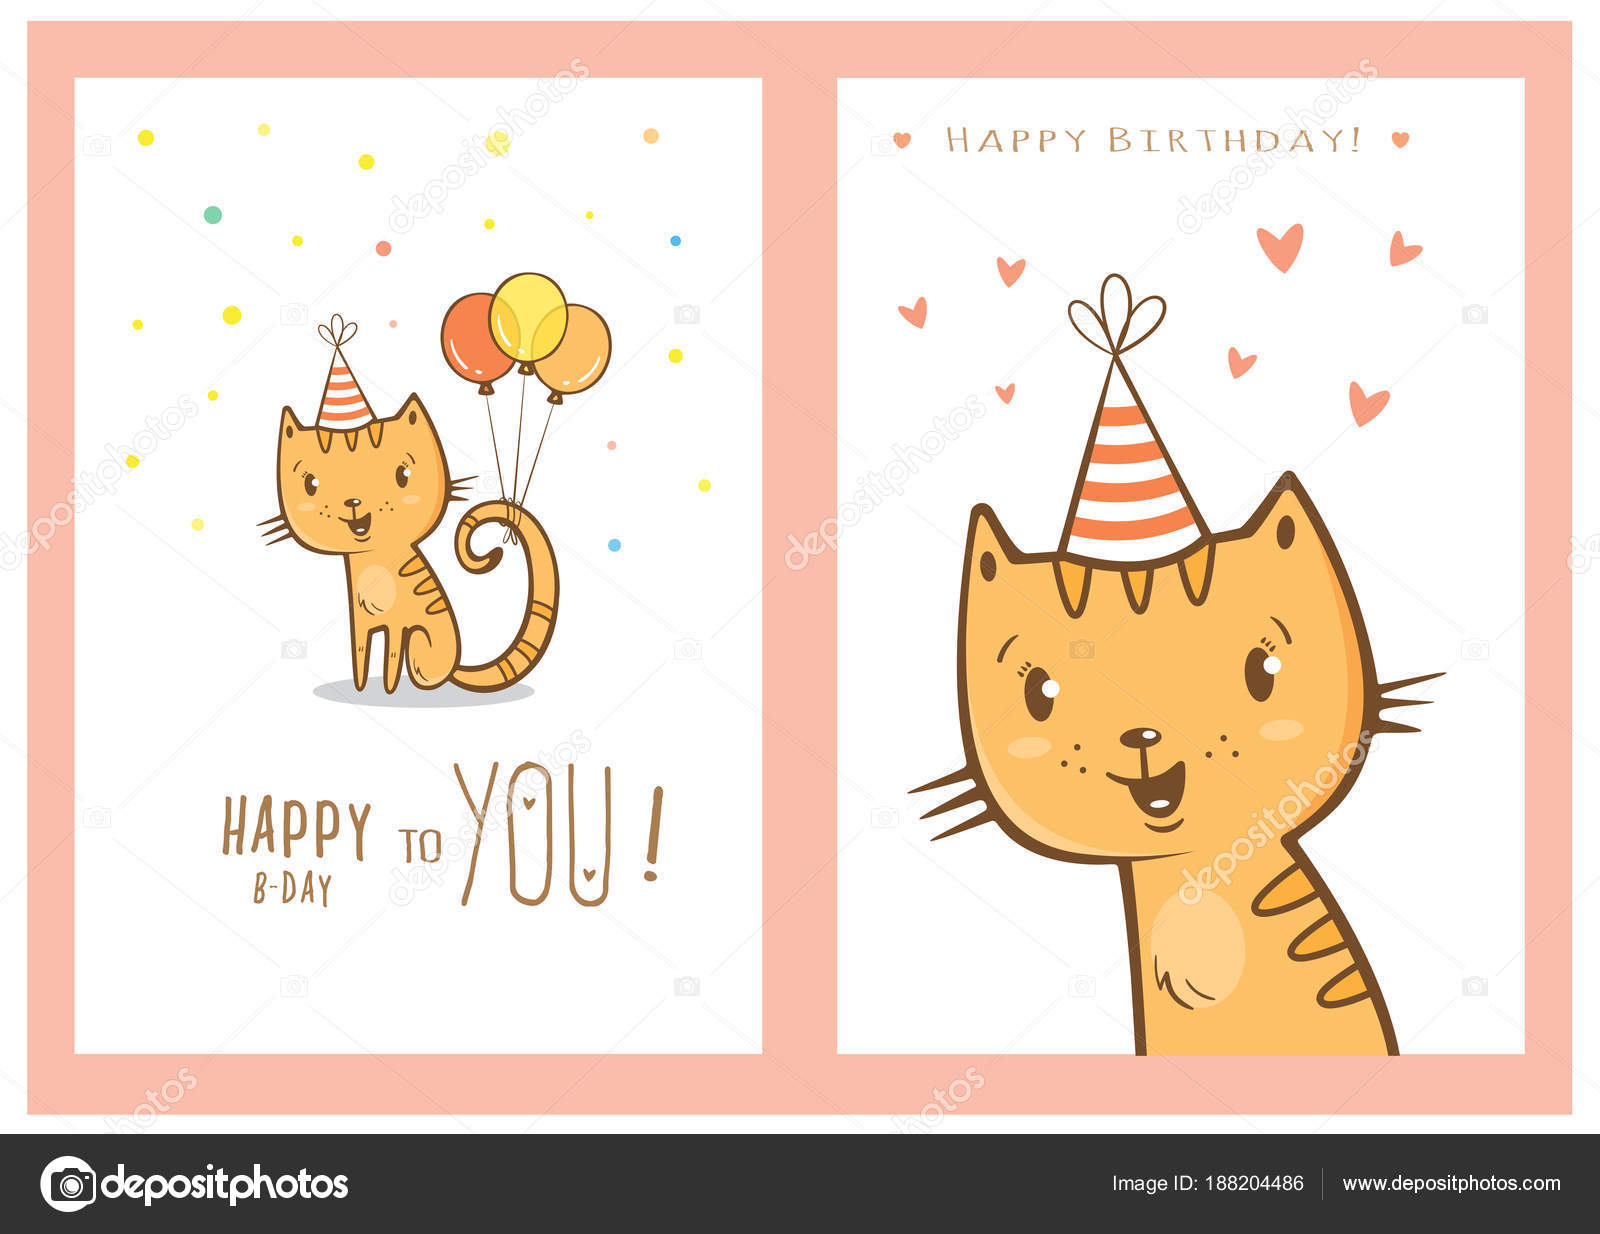 Birthday Cards Set With Cute Cartoon Cats Balloons And Party Hats Hearts Confetti Vector Contour Image Little Kittens Funny Animals